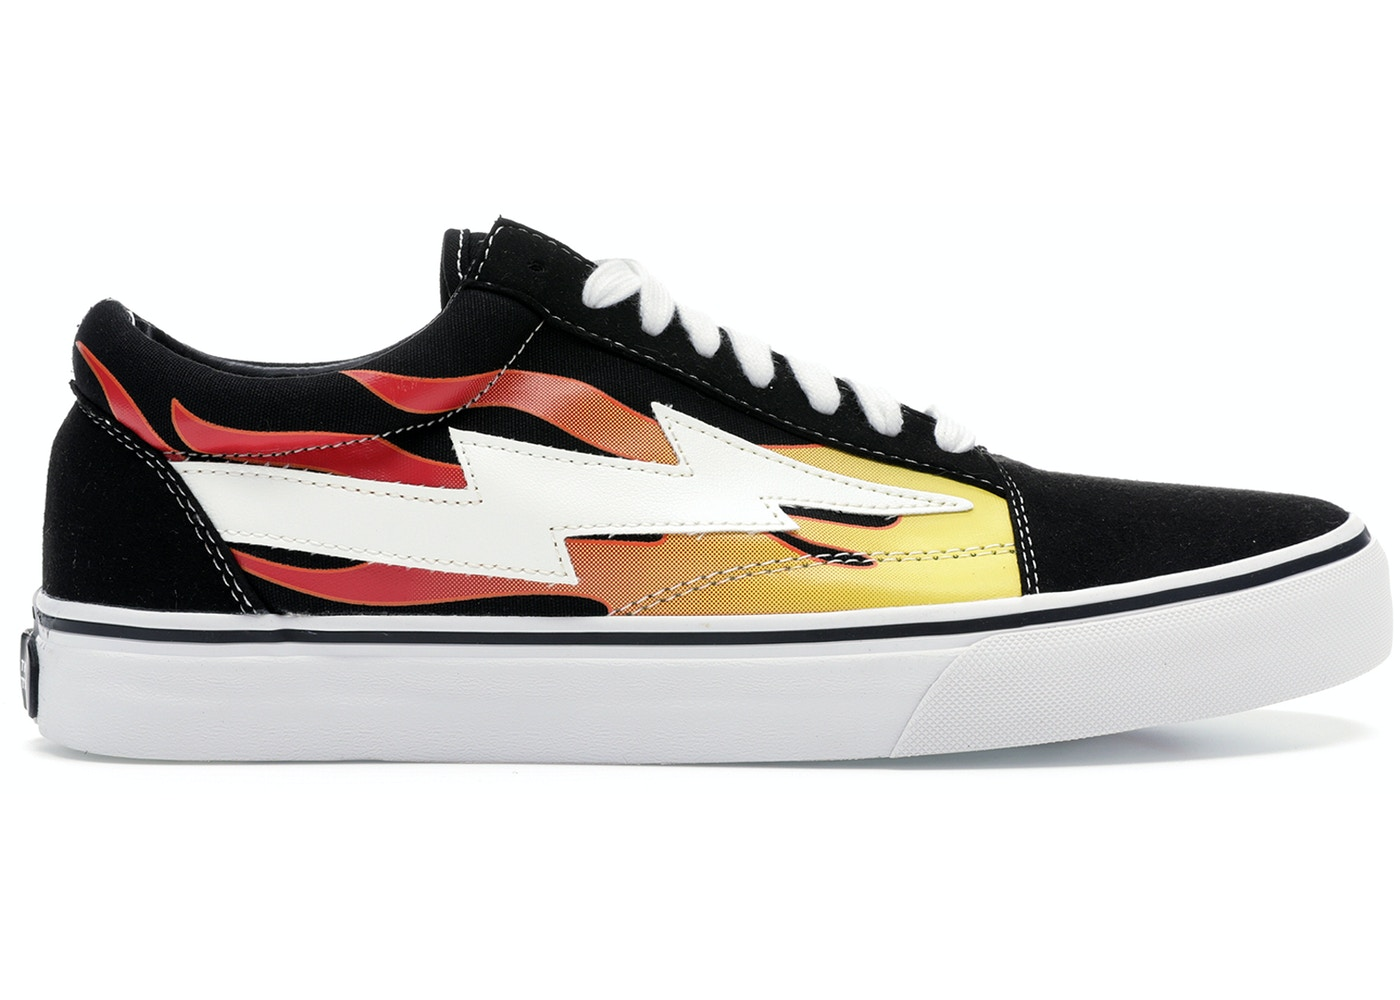 reputable site 2607e ba2ca Revenge X Storm Low Top Black (with Flames) - undefined